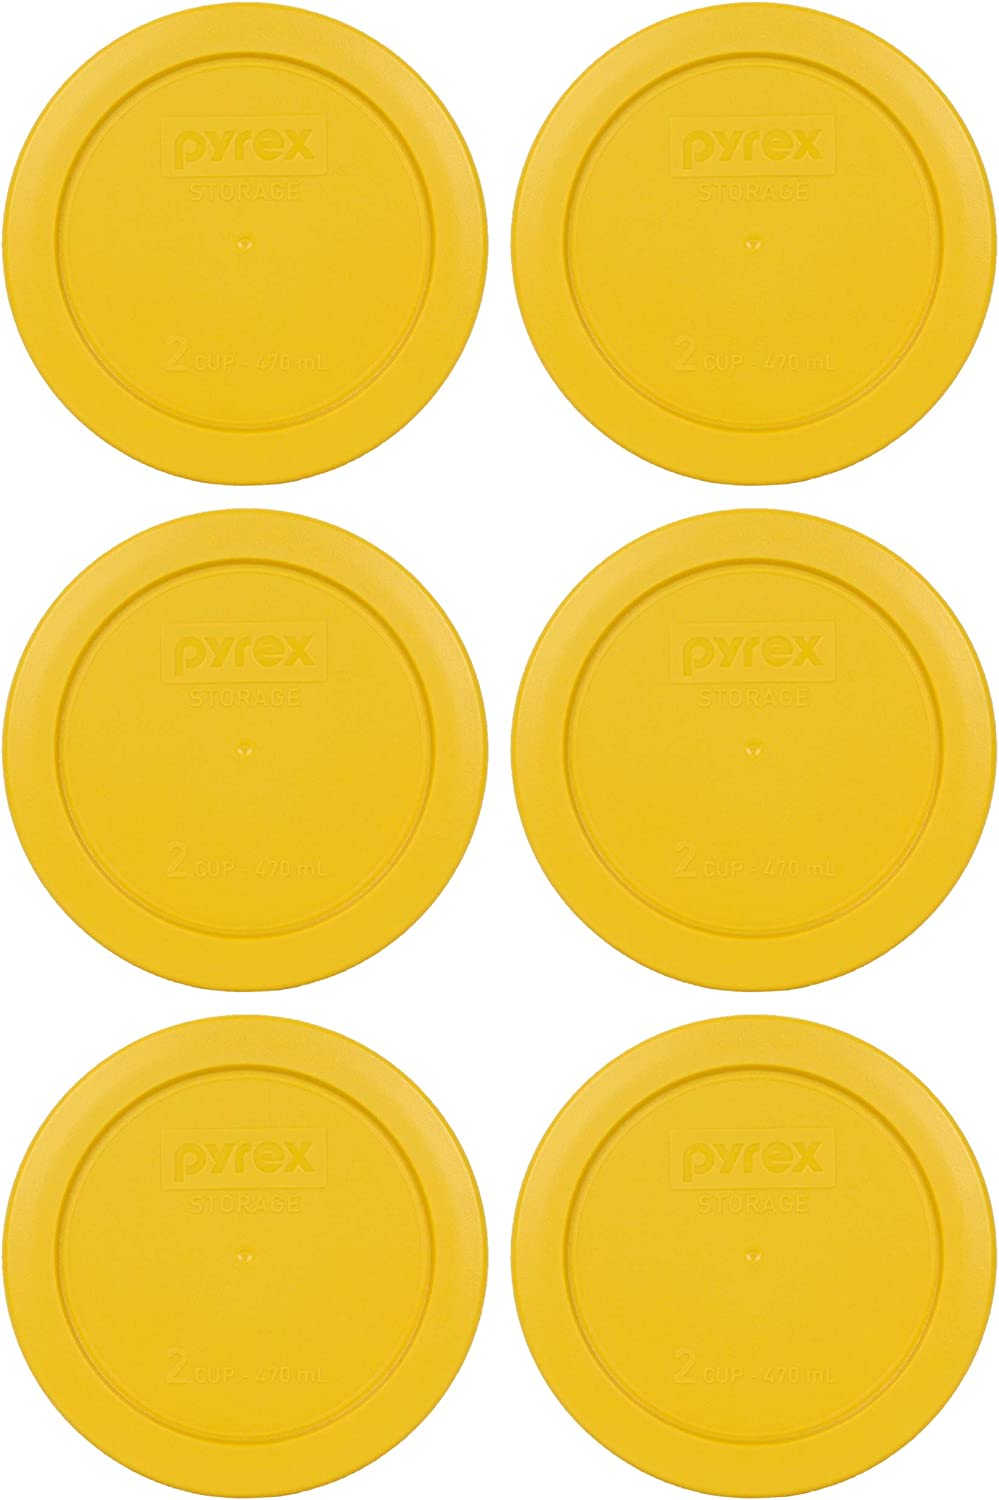 Pyrex 7200-PC 2 Cup Butter Yellow Round Plastic Food Storage Lids - 6 Pack